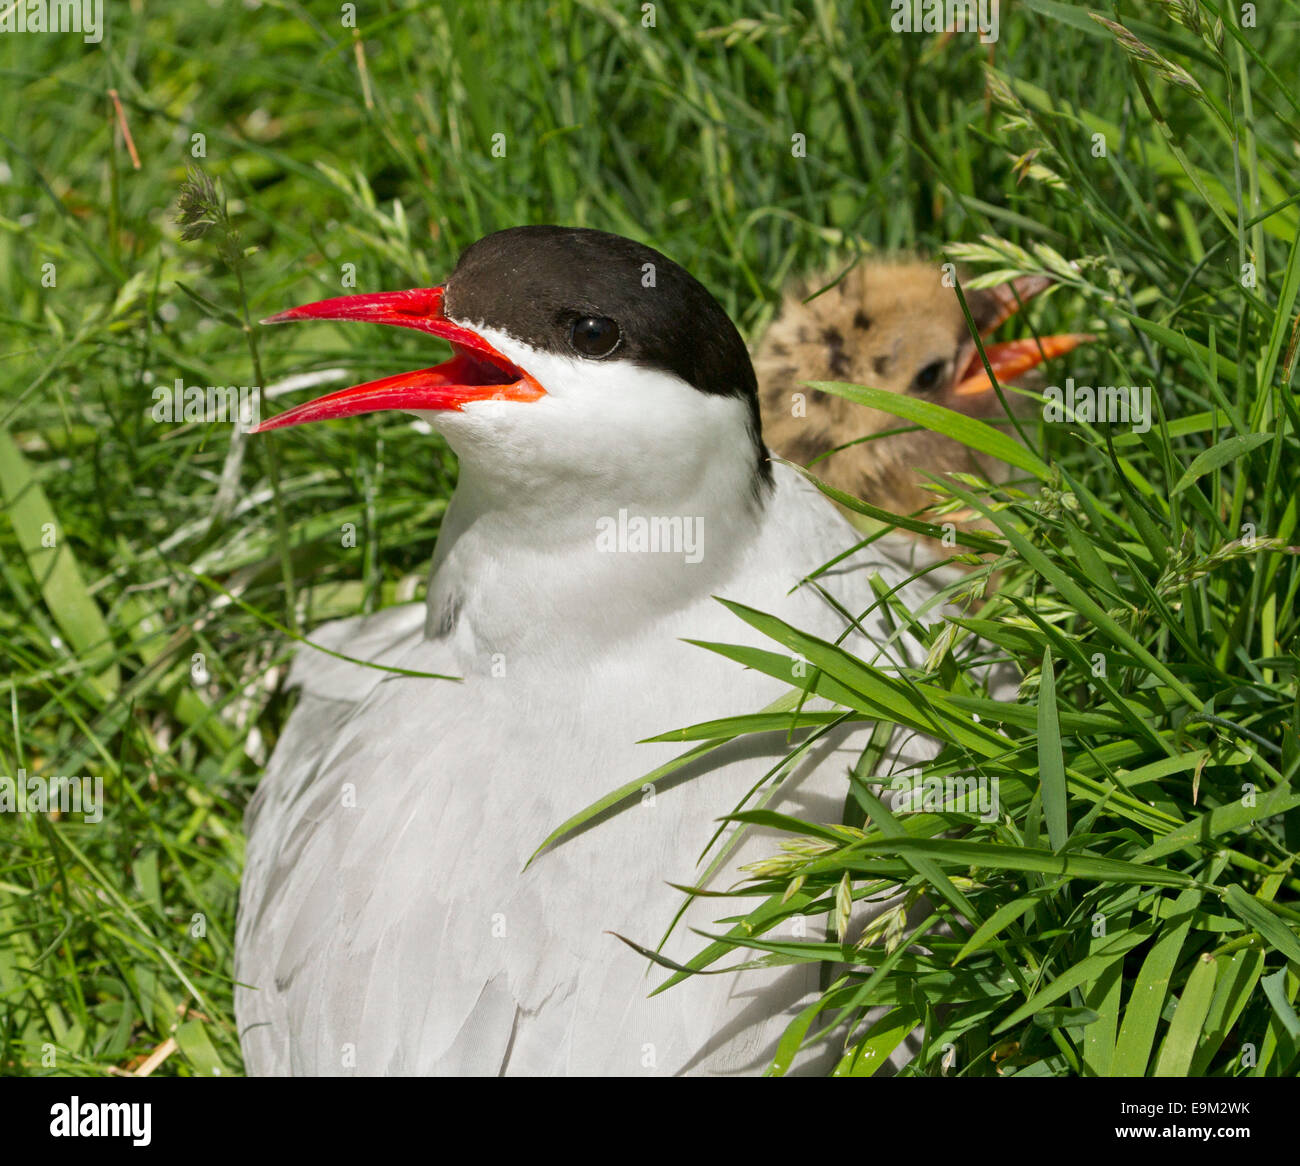 Female arctic tern, Sterna paradisaea, bright red beak open, on nest with chick among emerald grass on Farne Islands - Stock Image